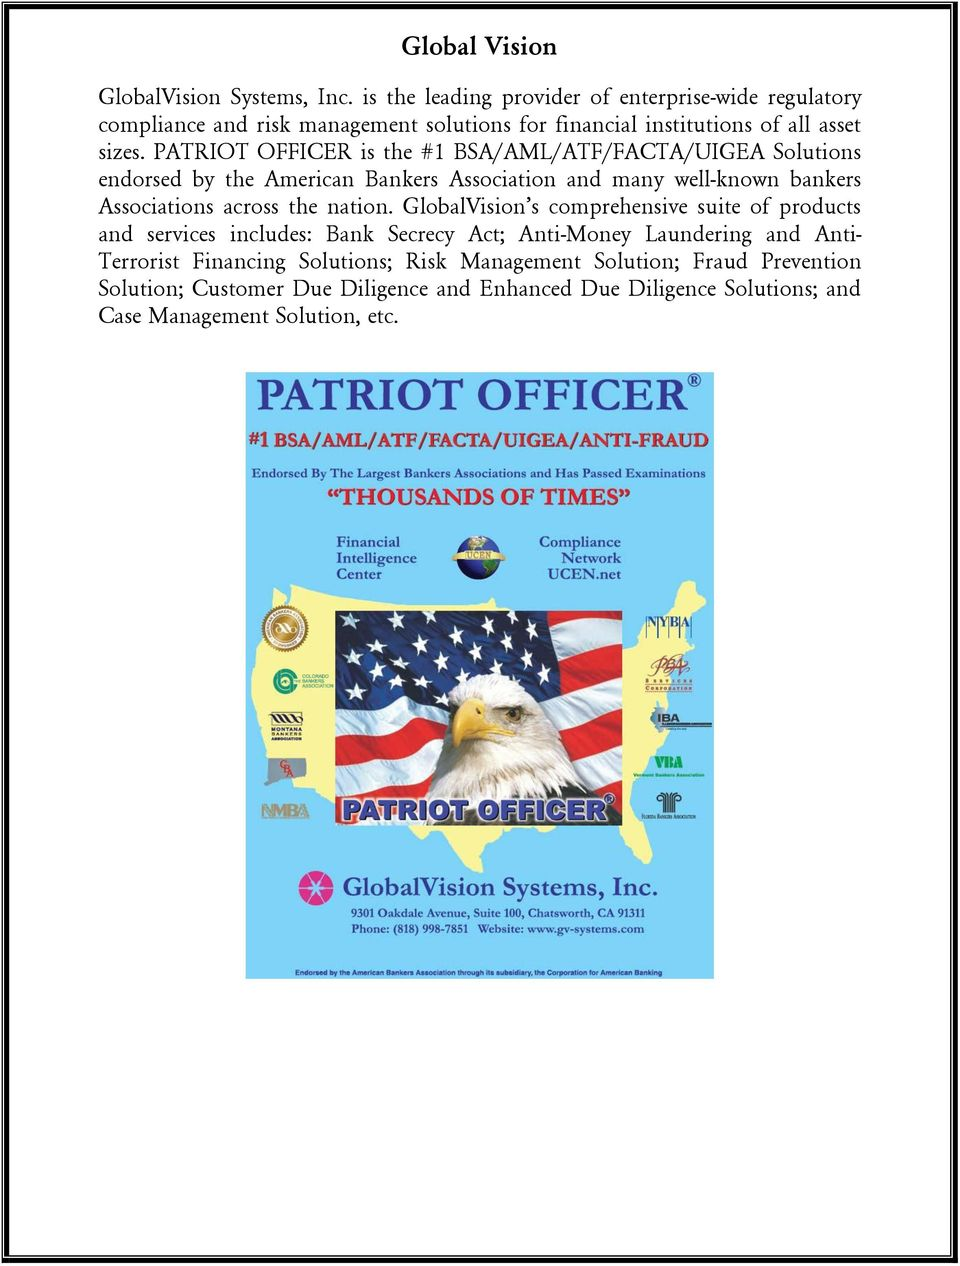 PATRIOT OFFICER is the #1 BSA/AML/ATF/FACTA/UIGEA Solutions endorsed by the American Bankers Association and many well-known bankers Associations across the